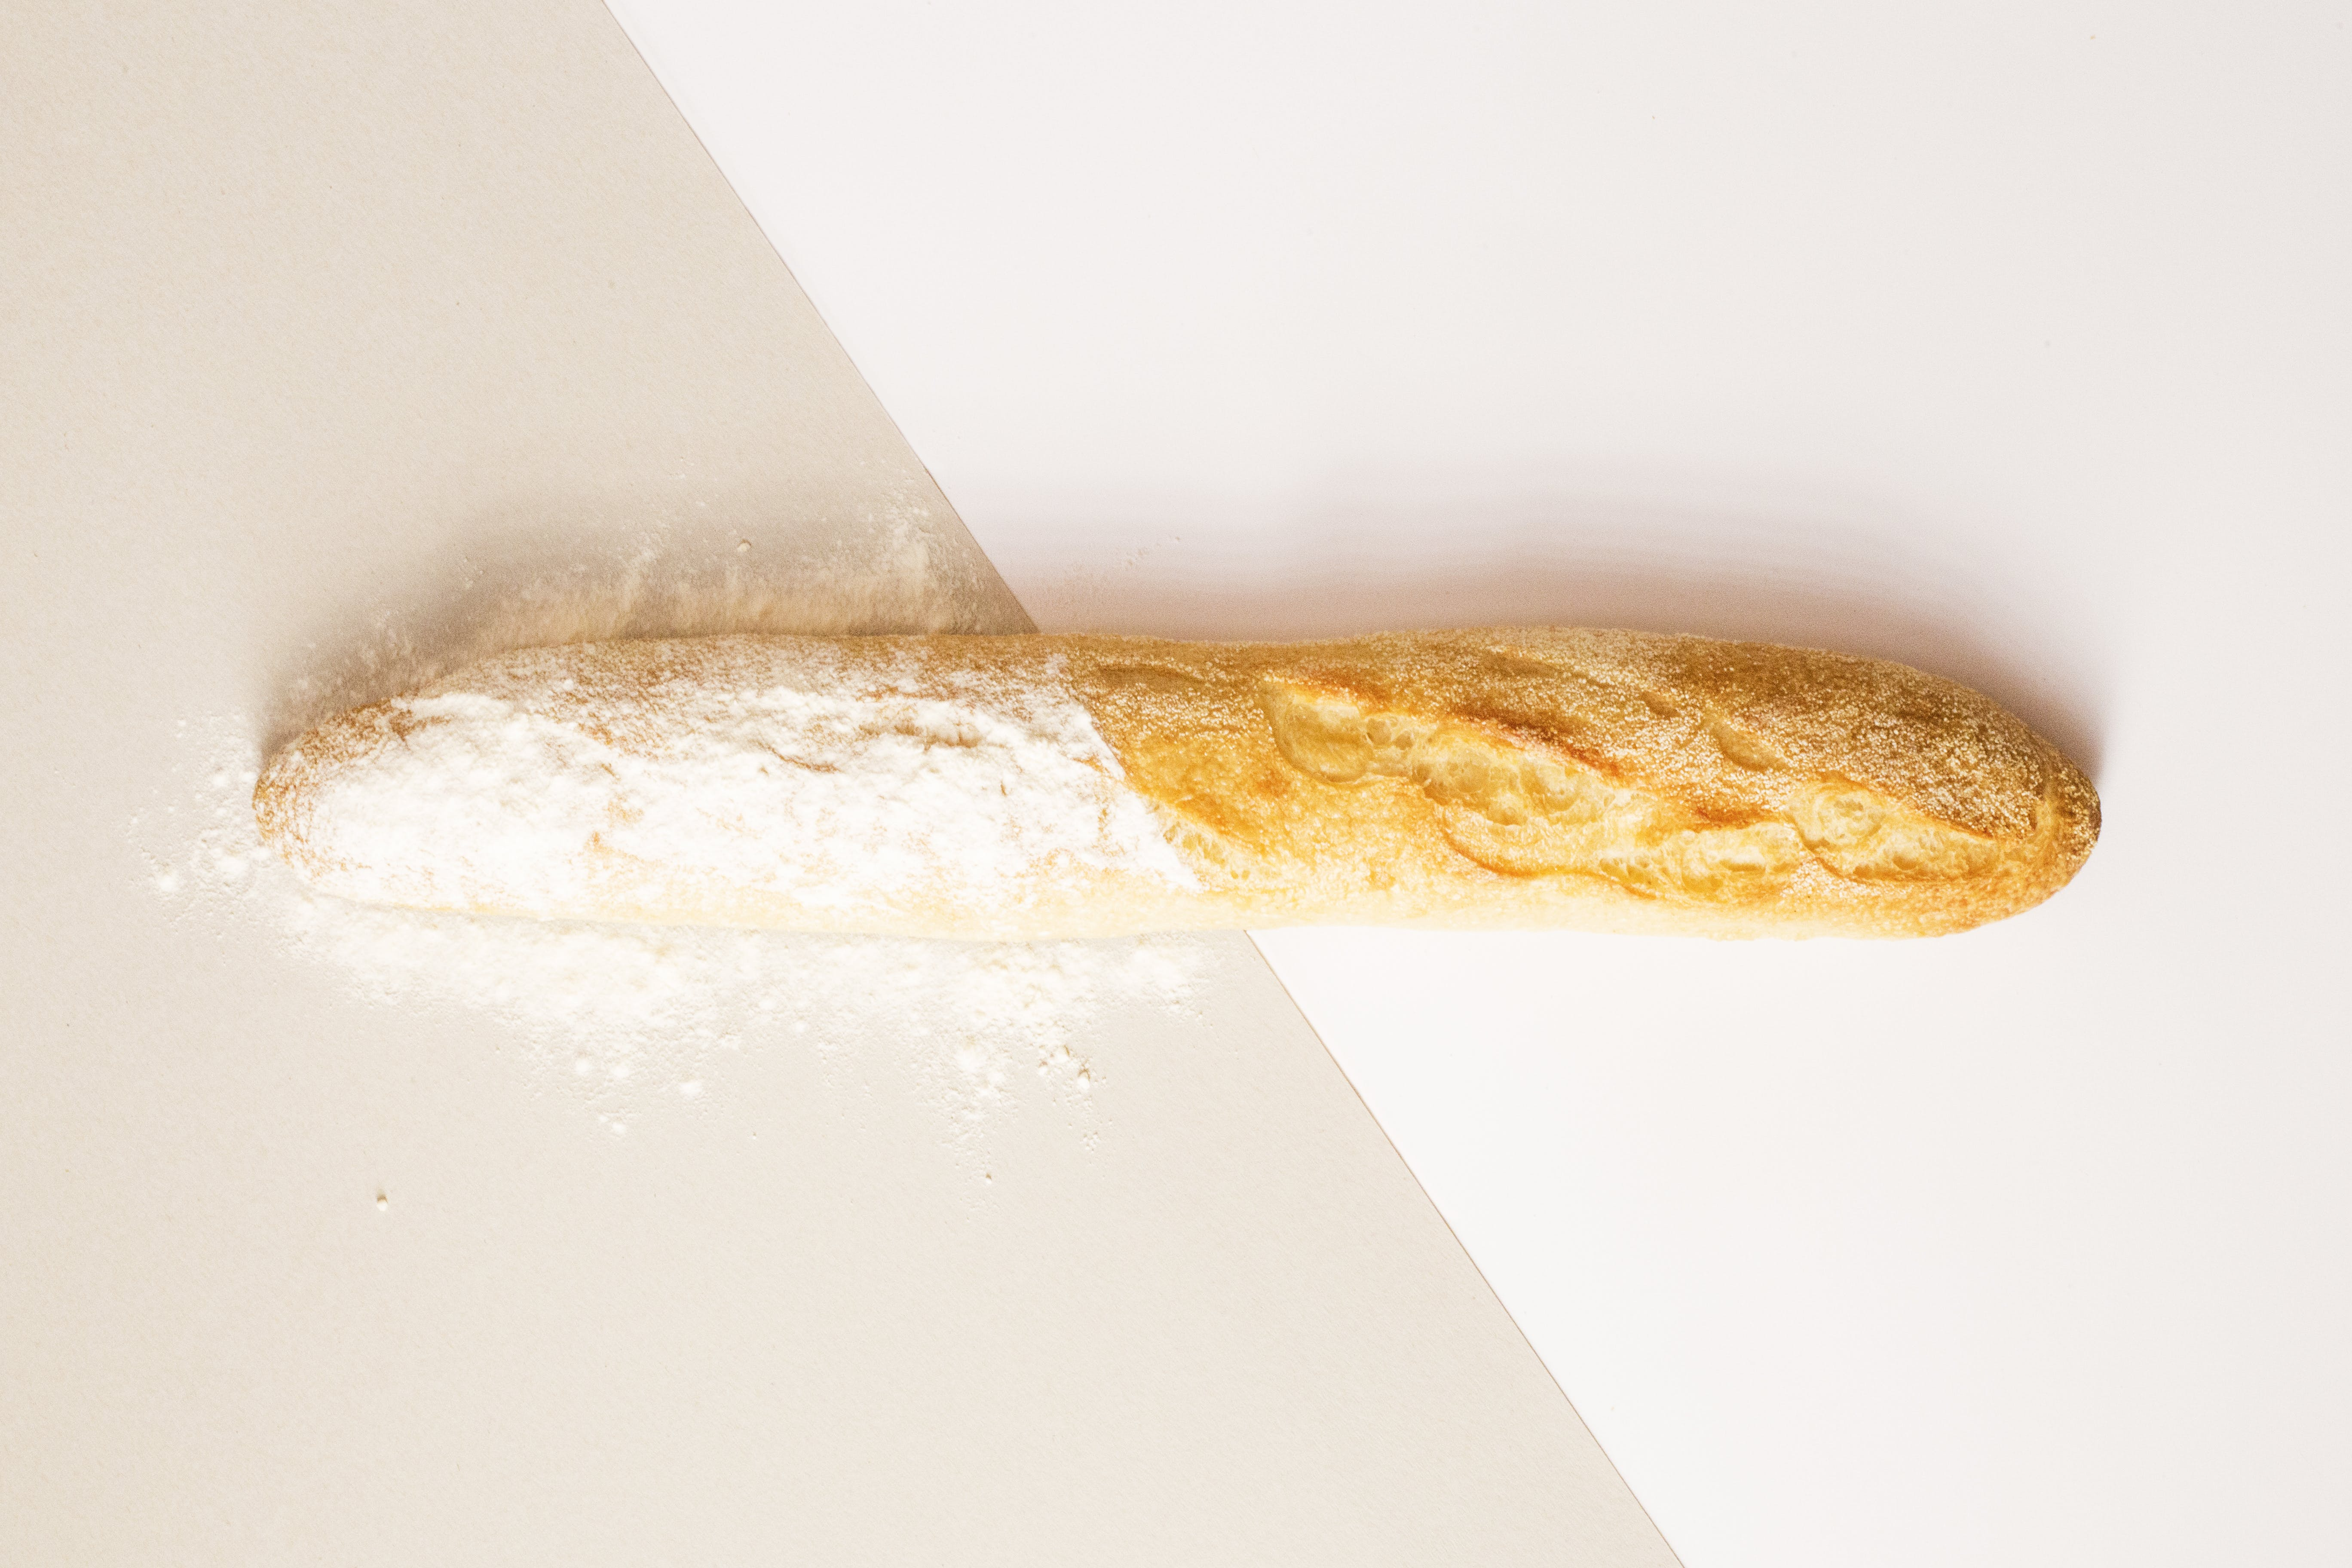 Baguette on White Surface